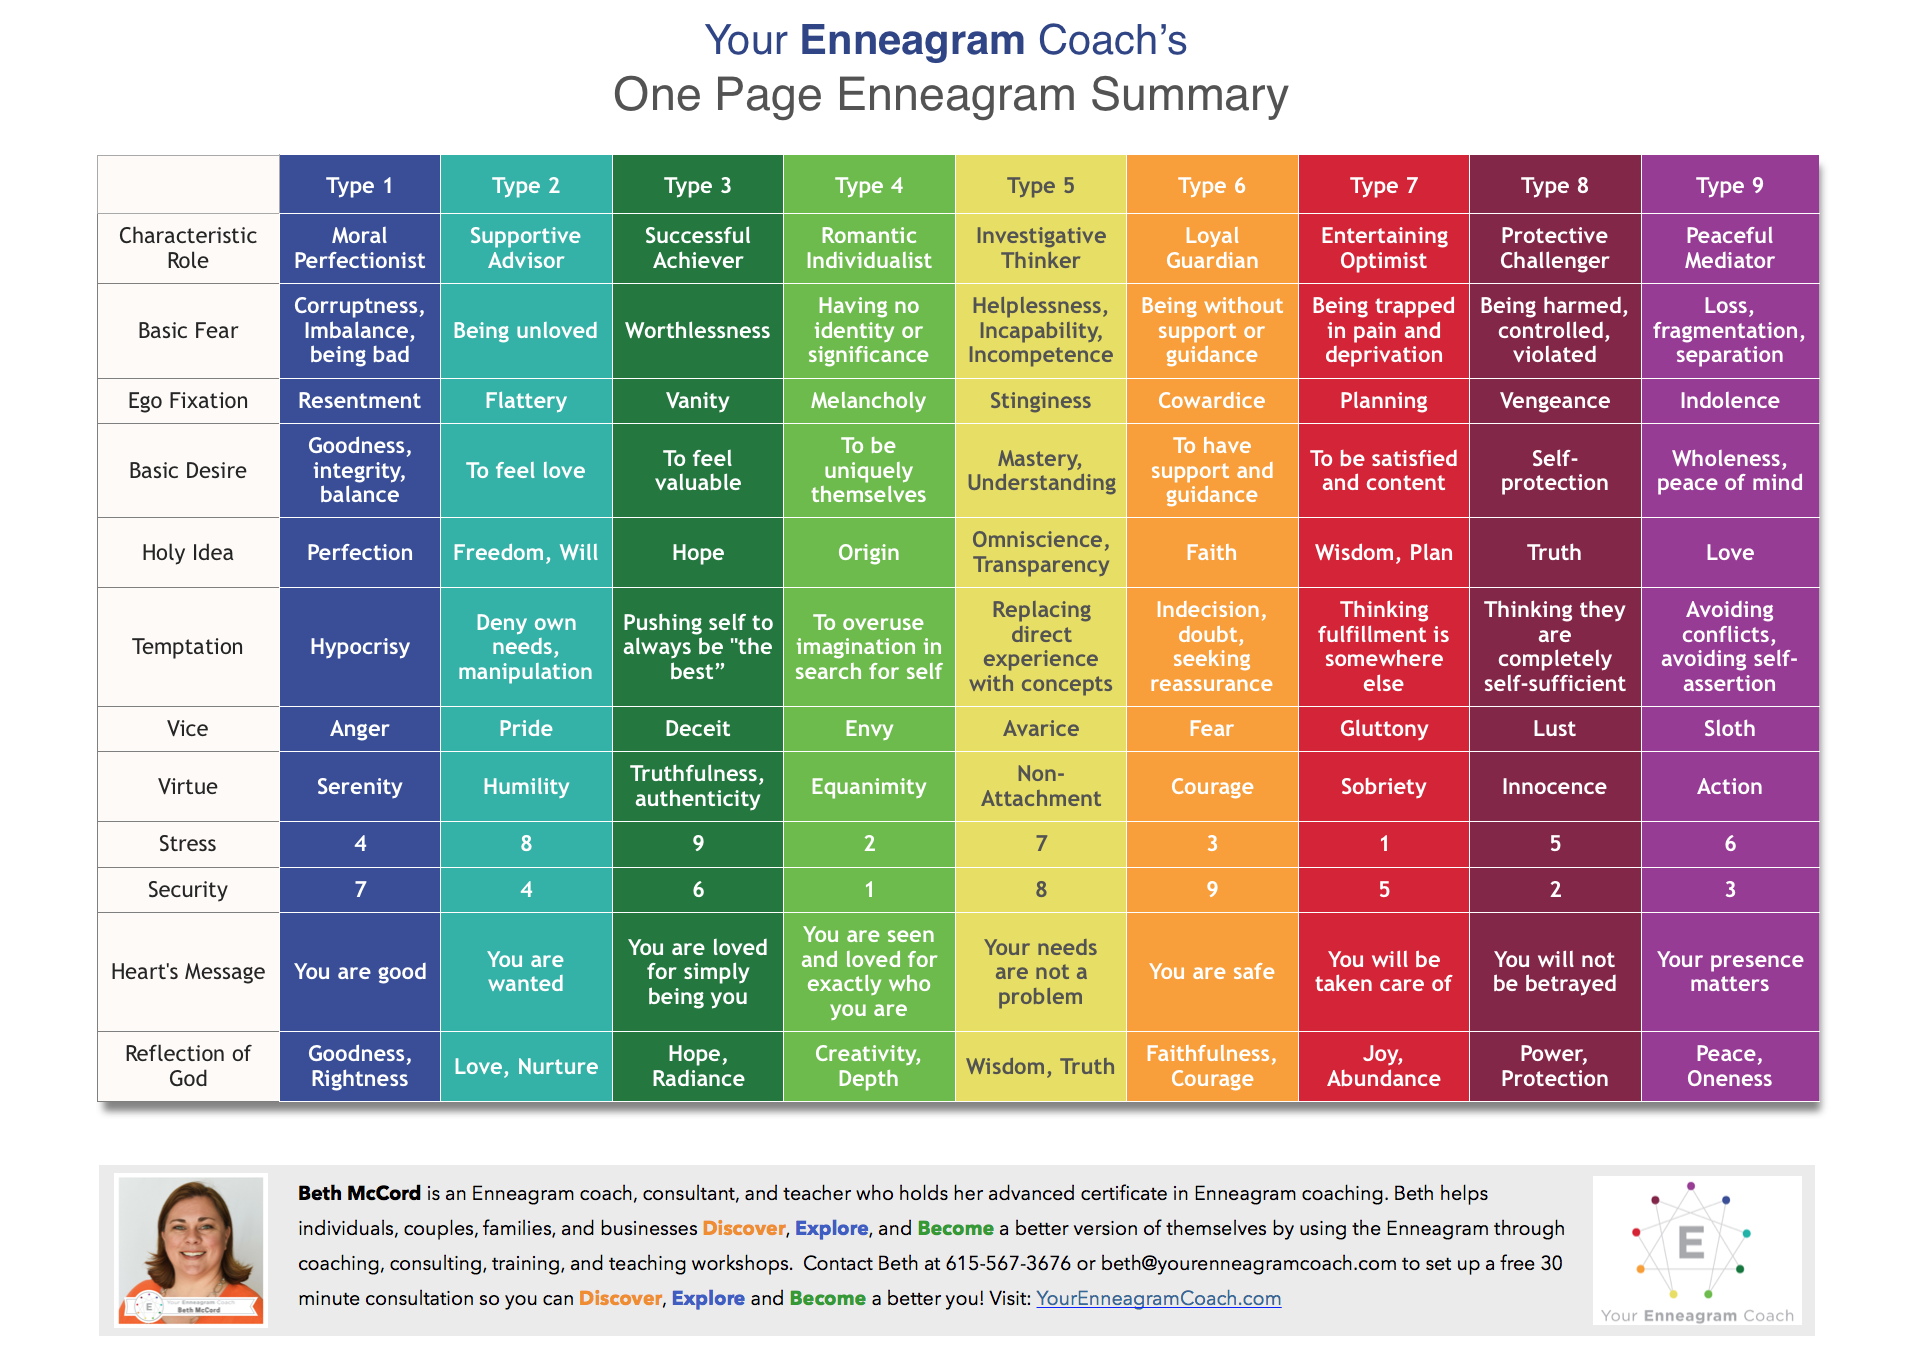 One Page Enneagram Summary From Your Enneagram Coach Beth Mccord